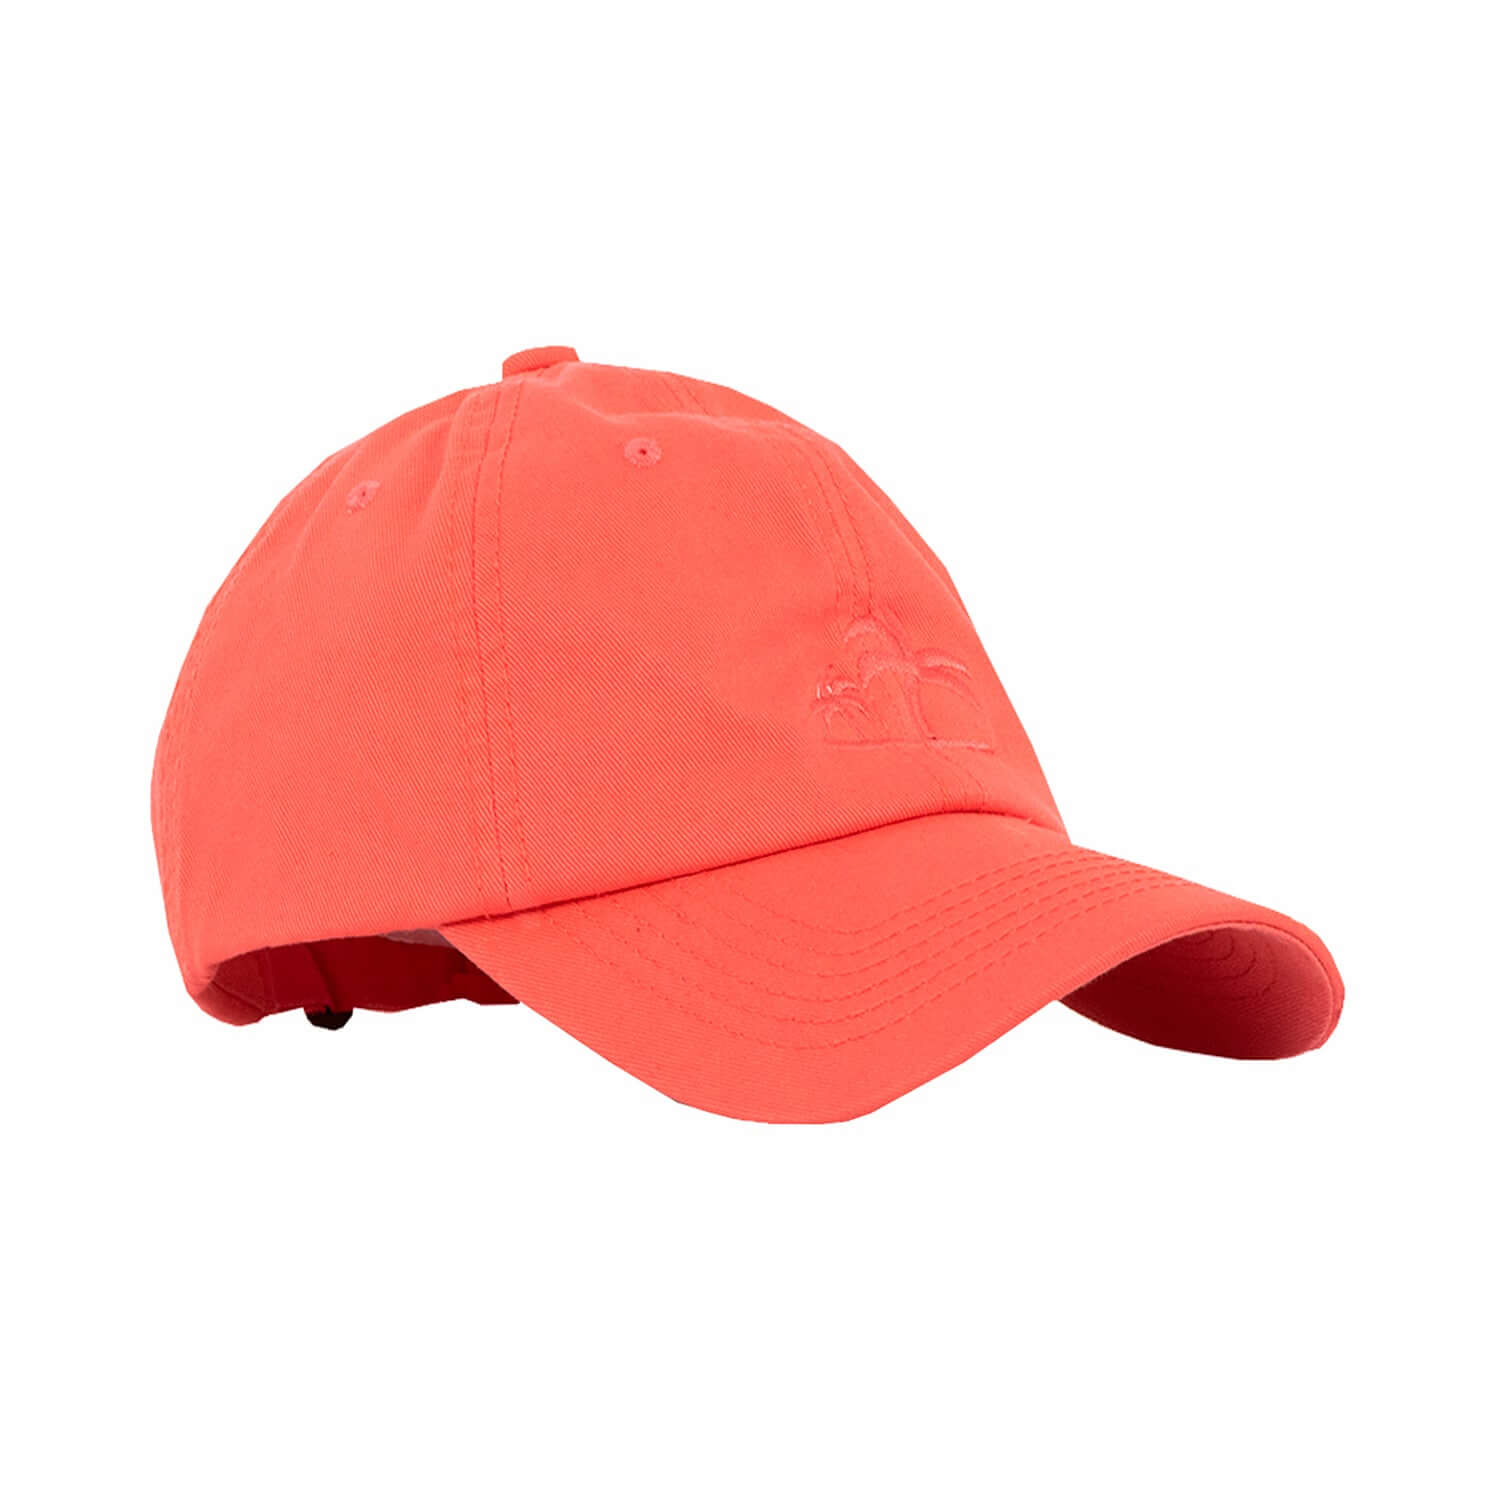 CORAL HAT - Clorofila Sea Wear